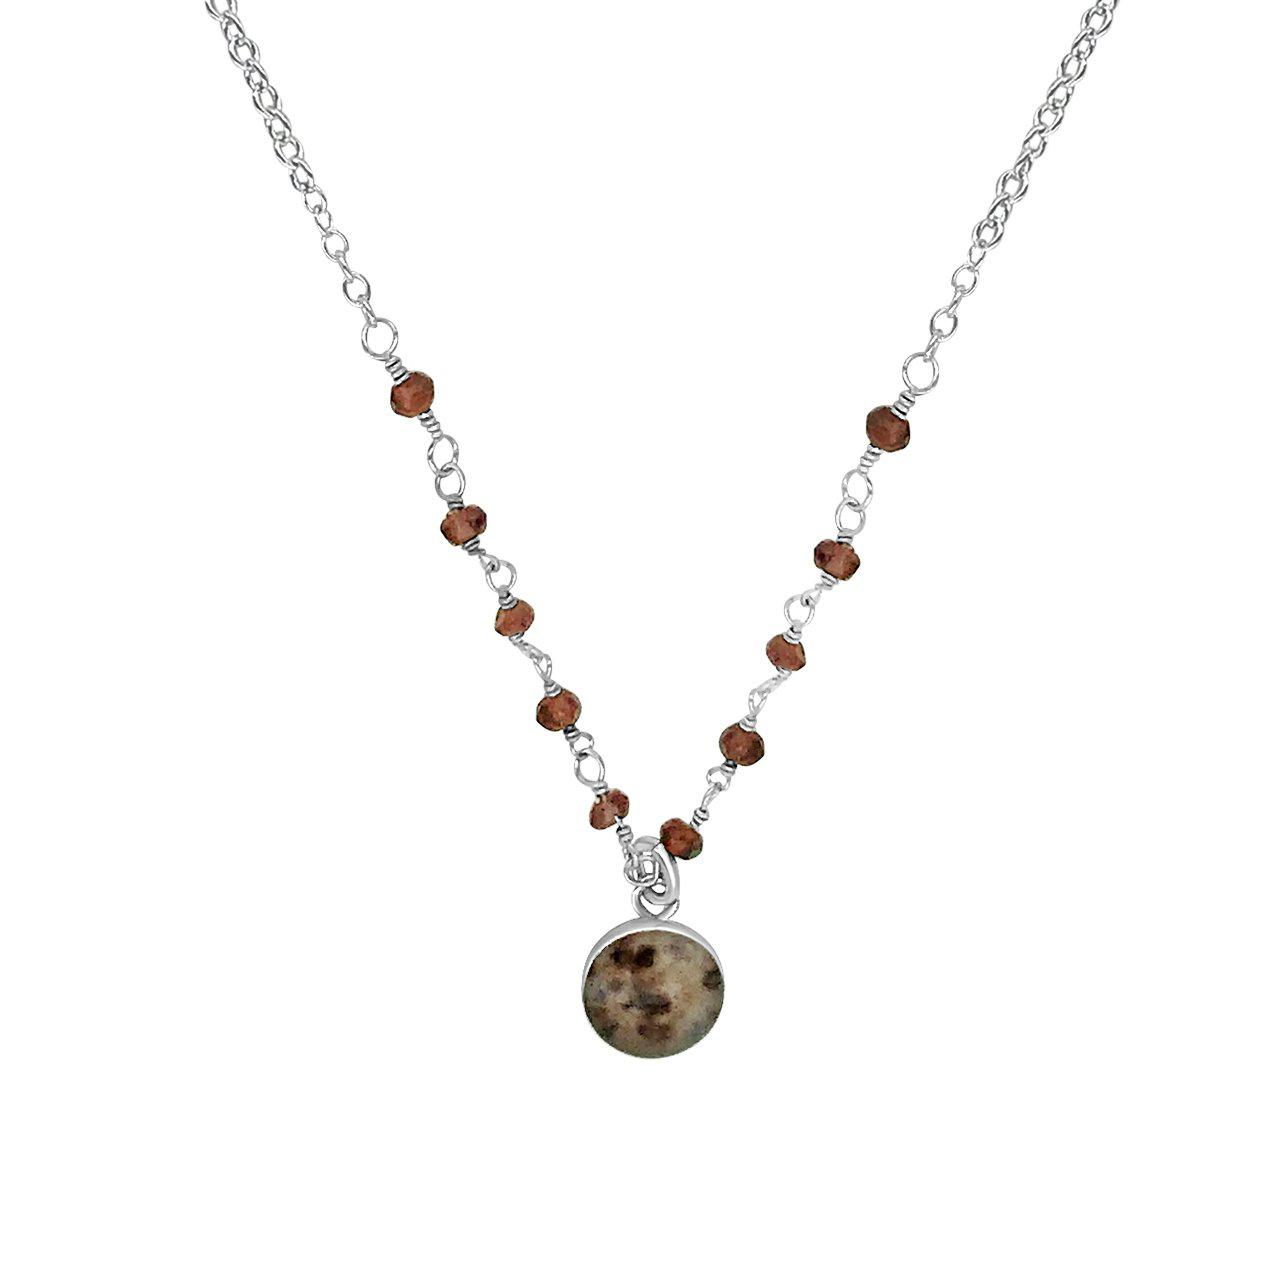 Close up of front and center necklace pendant round brown, beige and maroon pendant of a multiple sclerosis cell image in resin hanging from the center of faceted garnet stones across the front and sterling silver chain